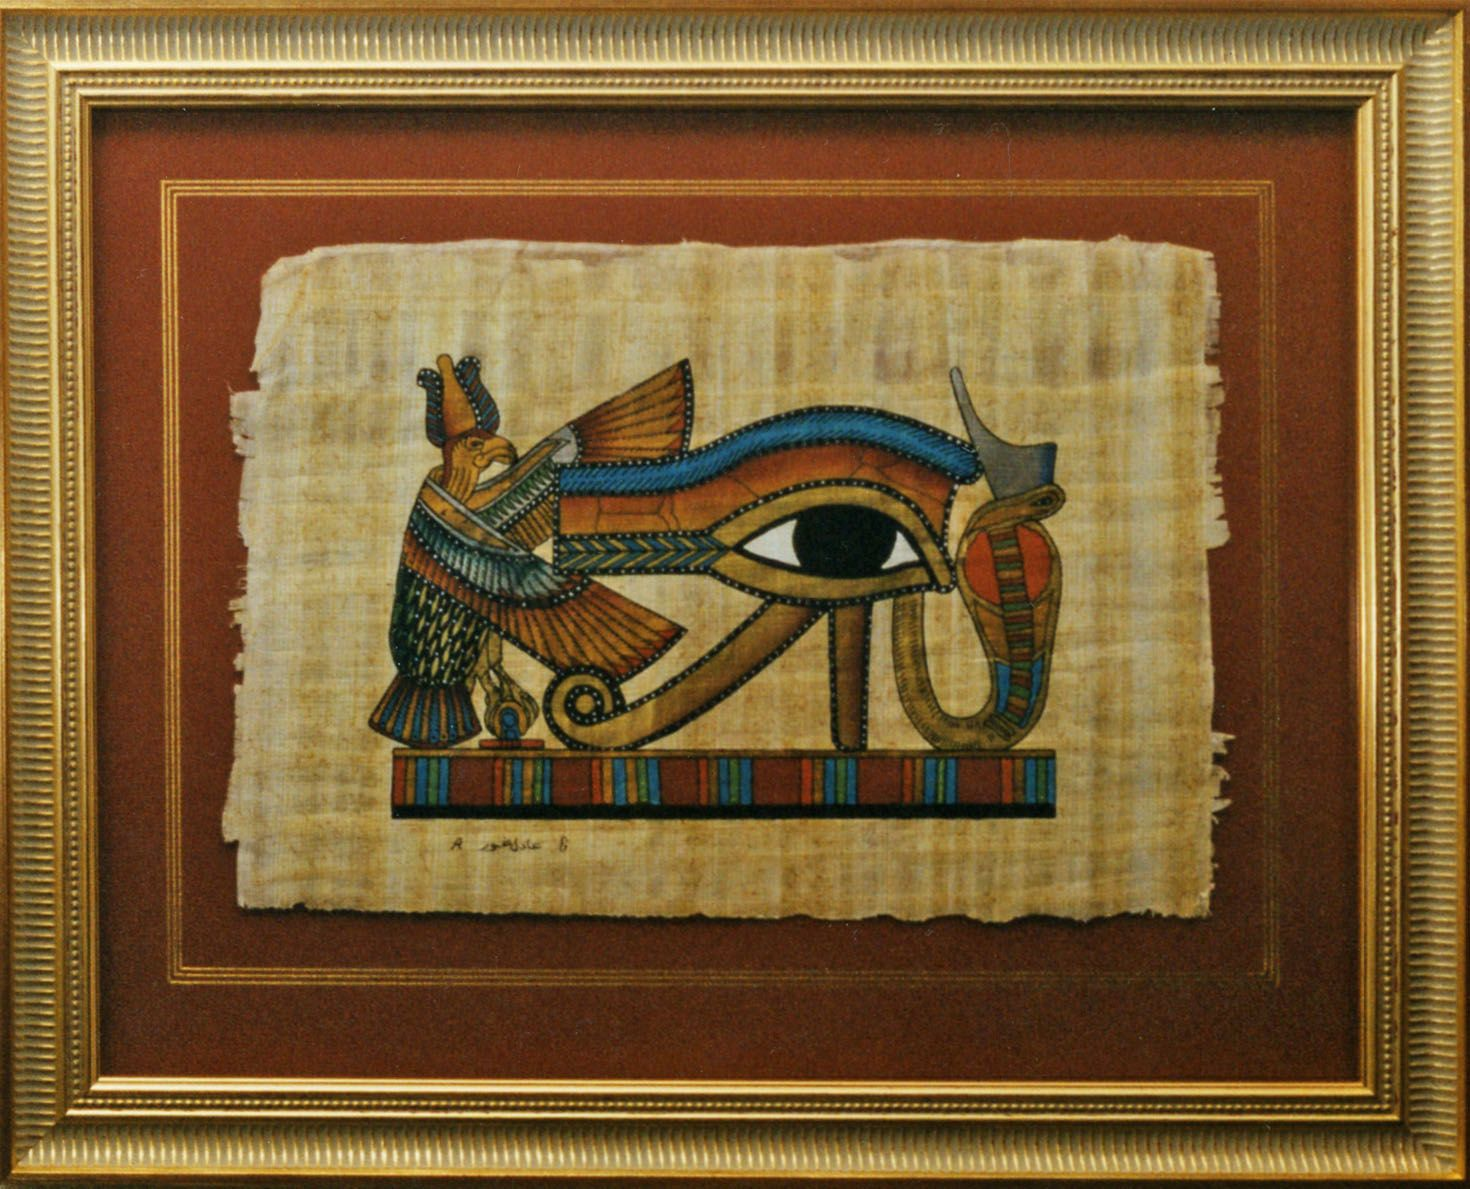 A float mounted papyrus | Assorted Framing | Pinterest | Decorating ...